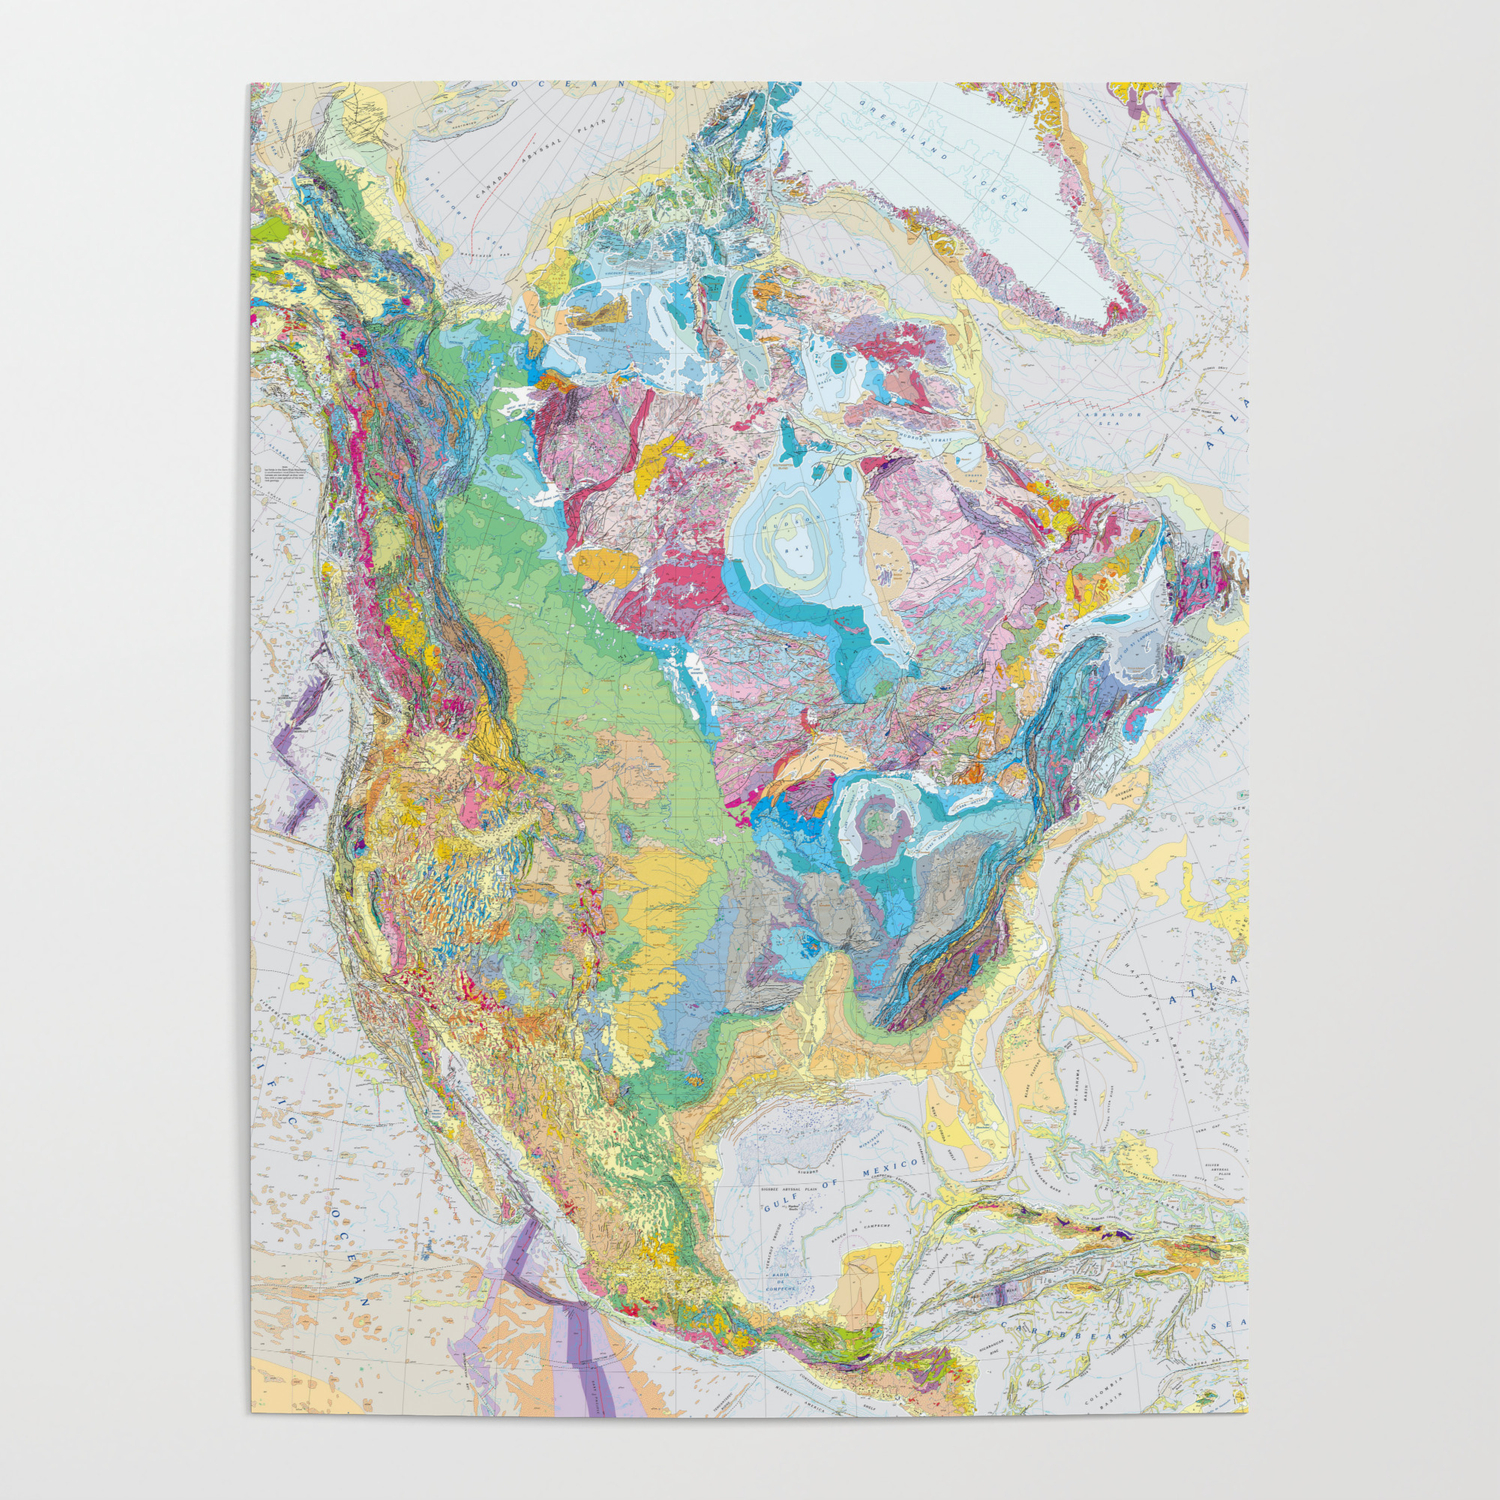 USGS Geological Map of North America Poster by fineearthprints